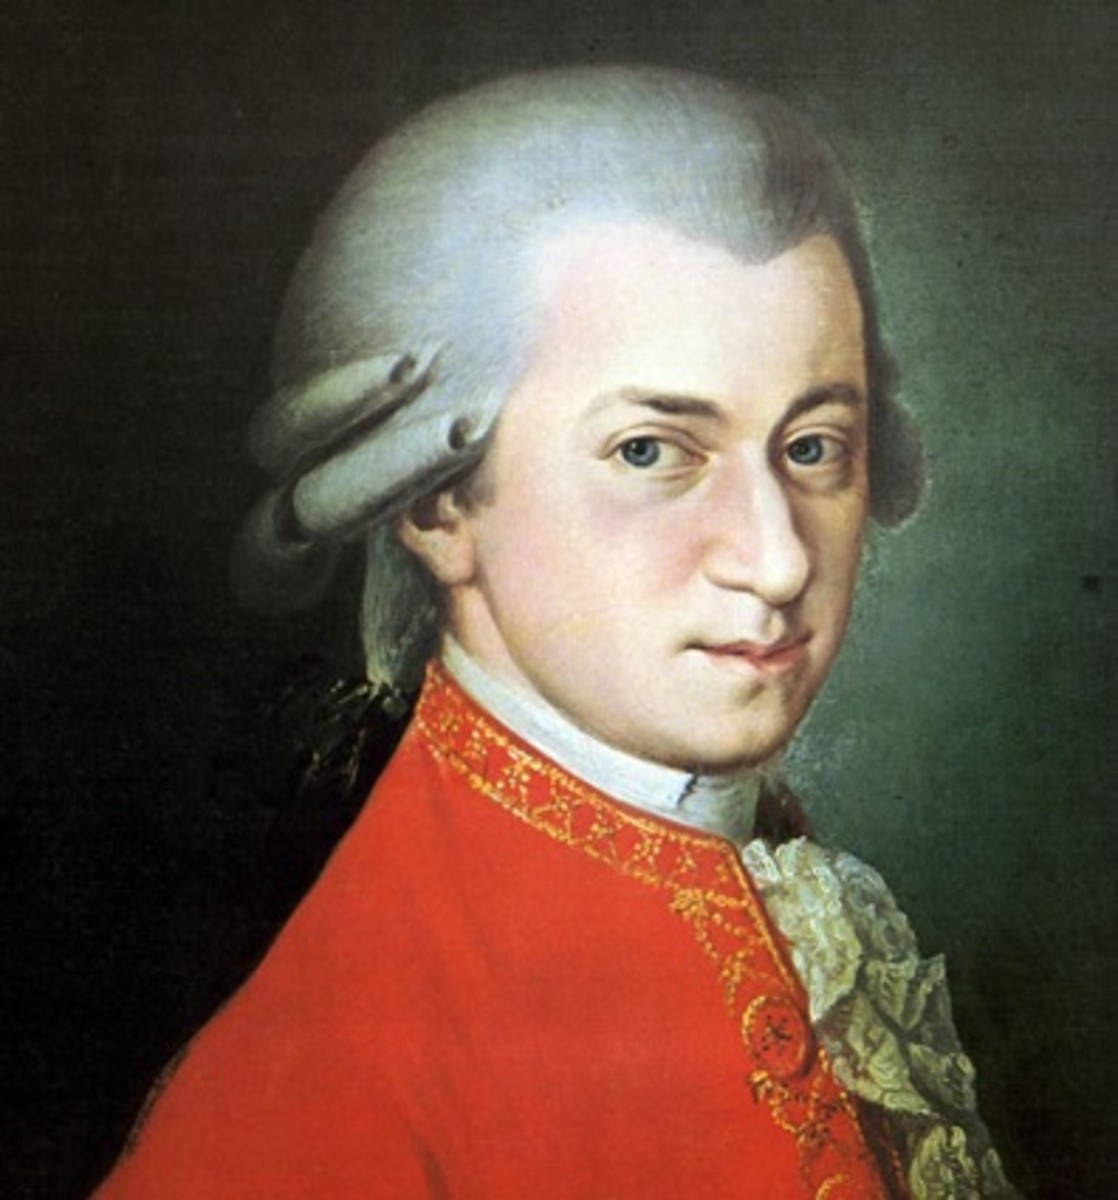 gcse-music-symphony-no40-in-g-minor-1st-movement-mozart